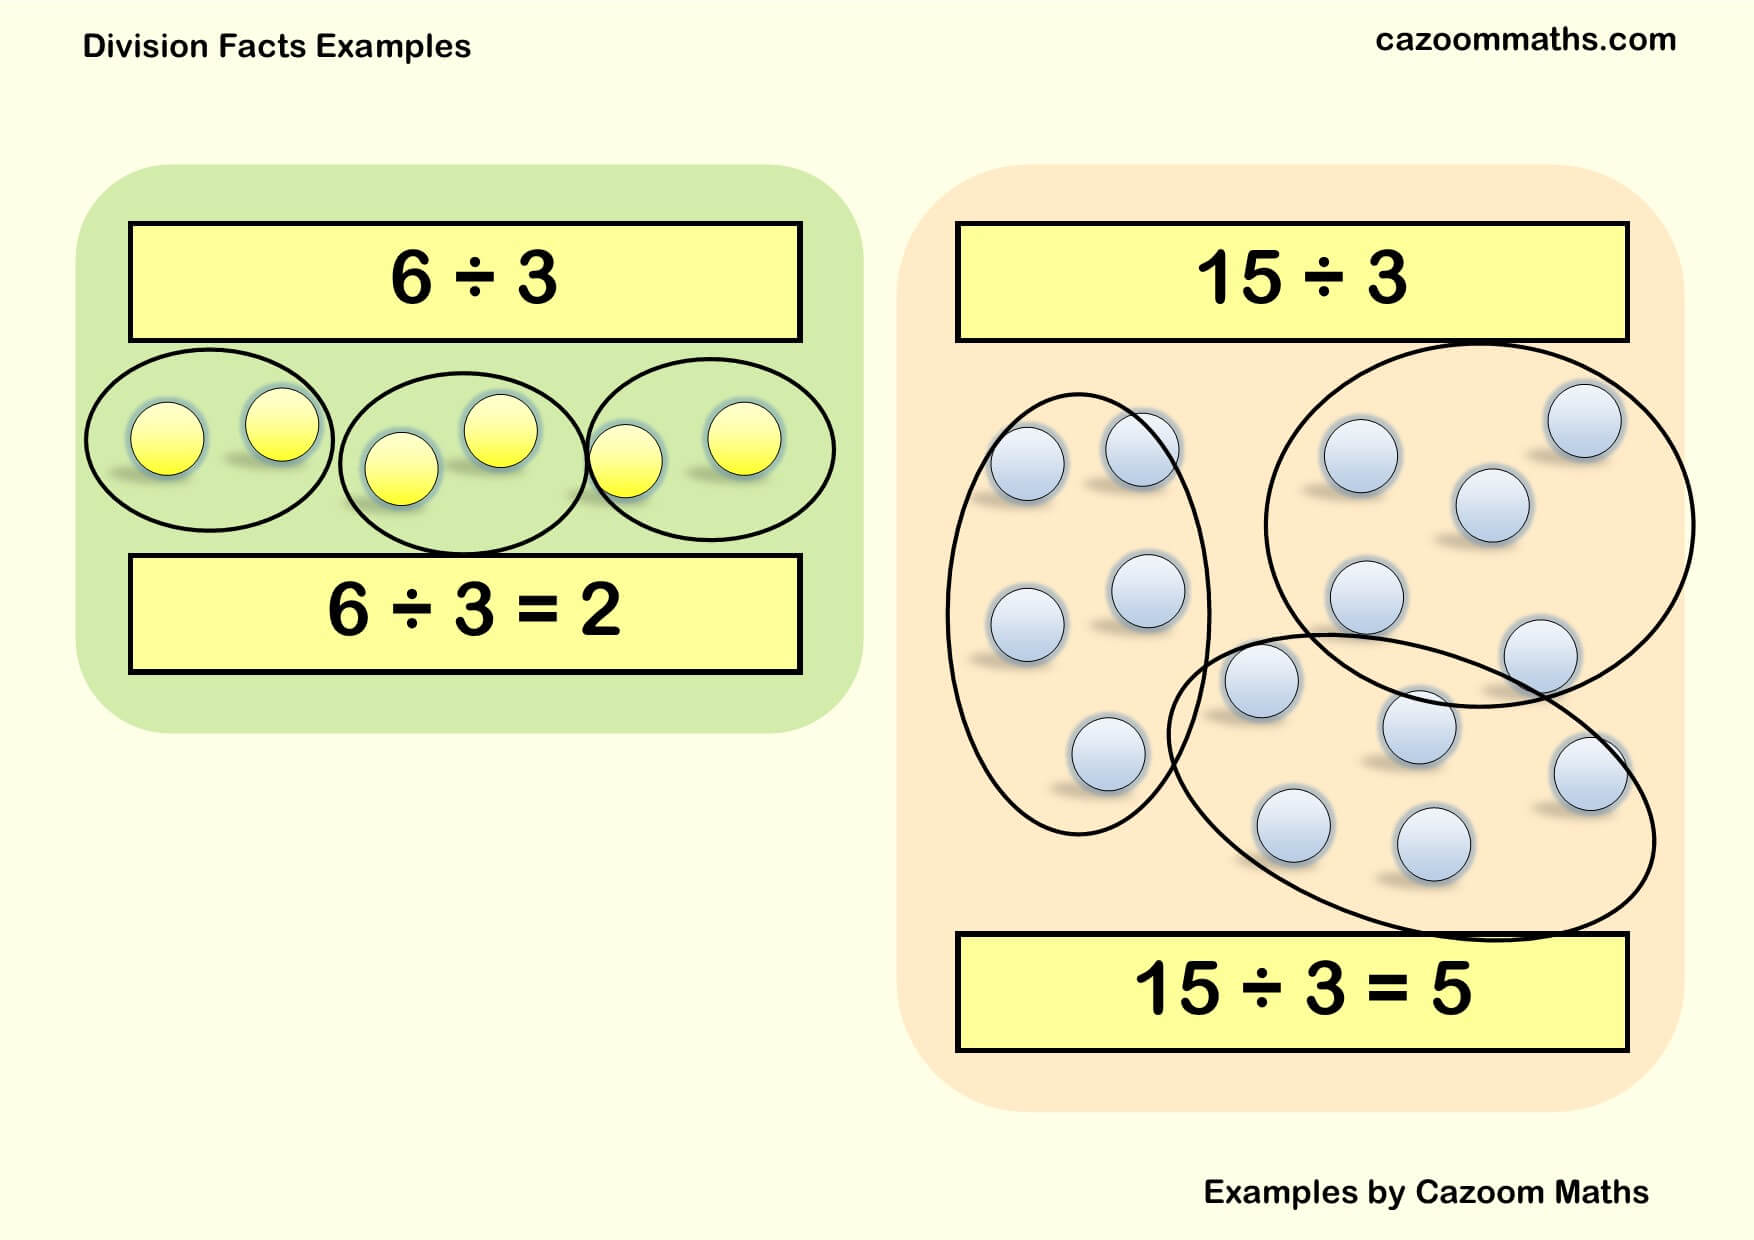 Division Facts Example